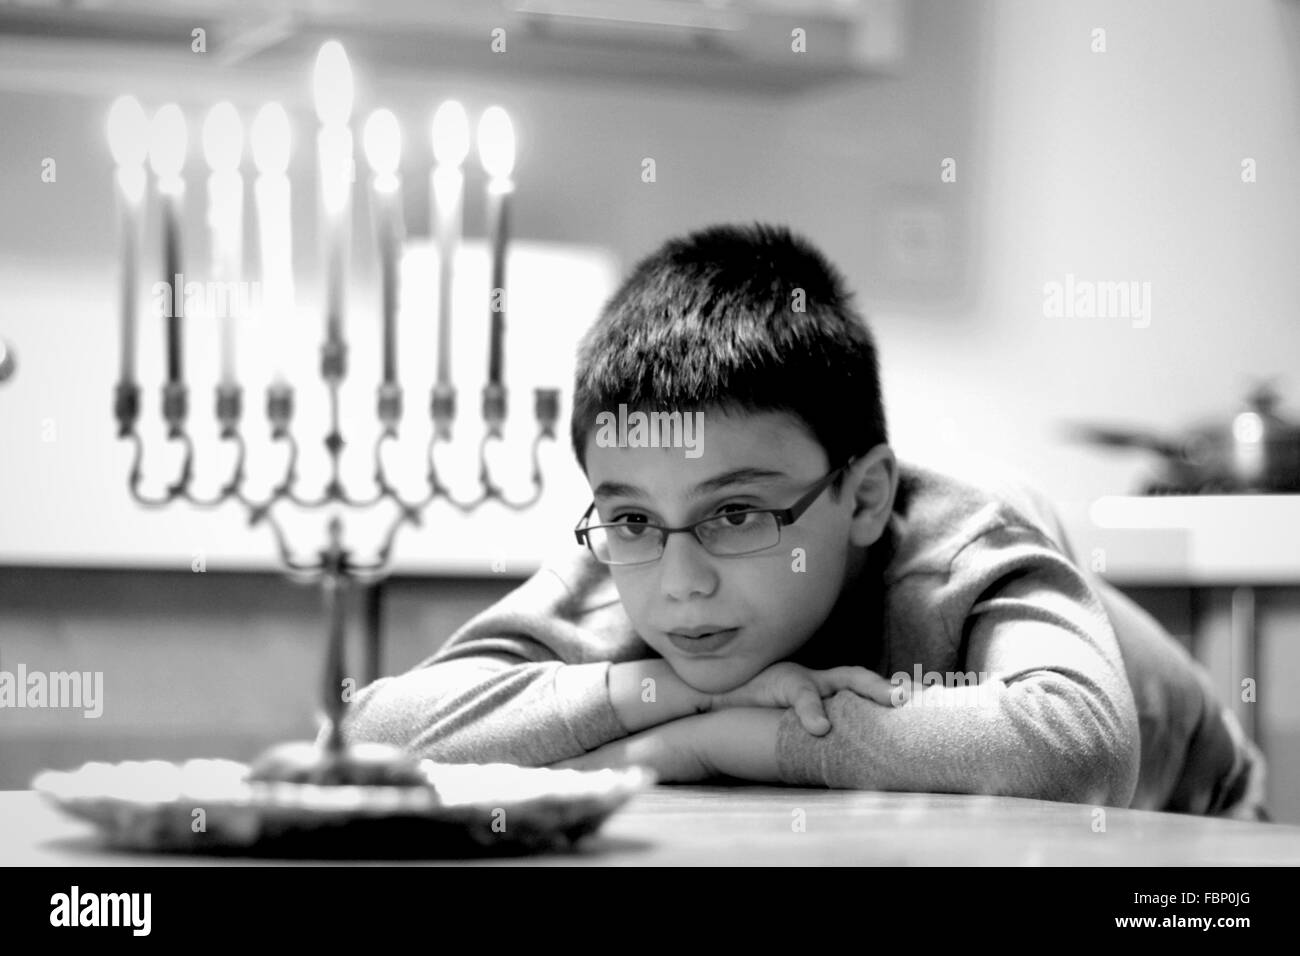 Cute Boy Looking At Lit Candles While Sitting On Table At Home - Stock Image